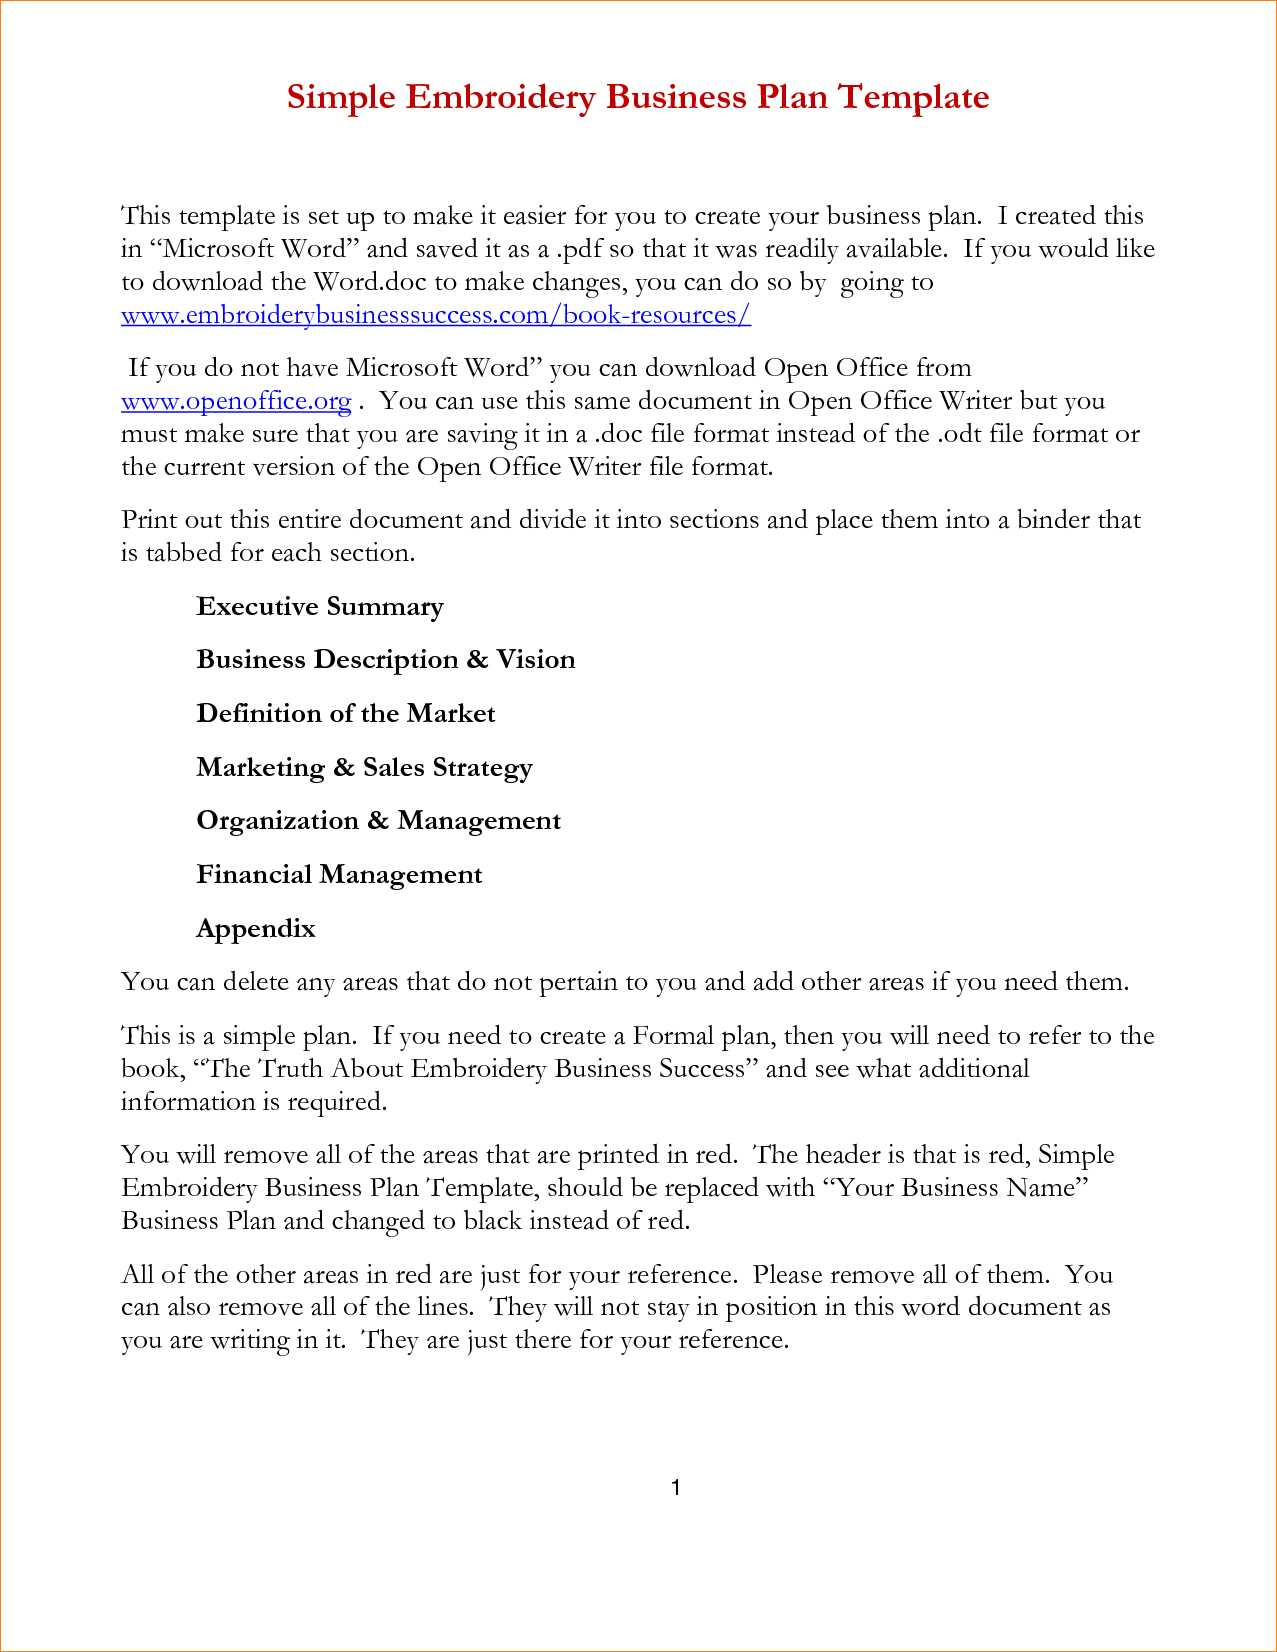 Billable Hours Spreadsheet Template Throughout Consultant Billable Hours Spreadsheet As Well As Consulting Proposal